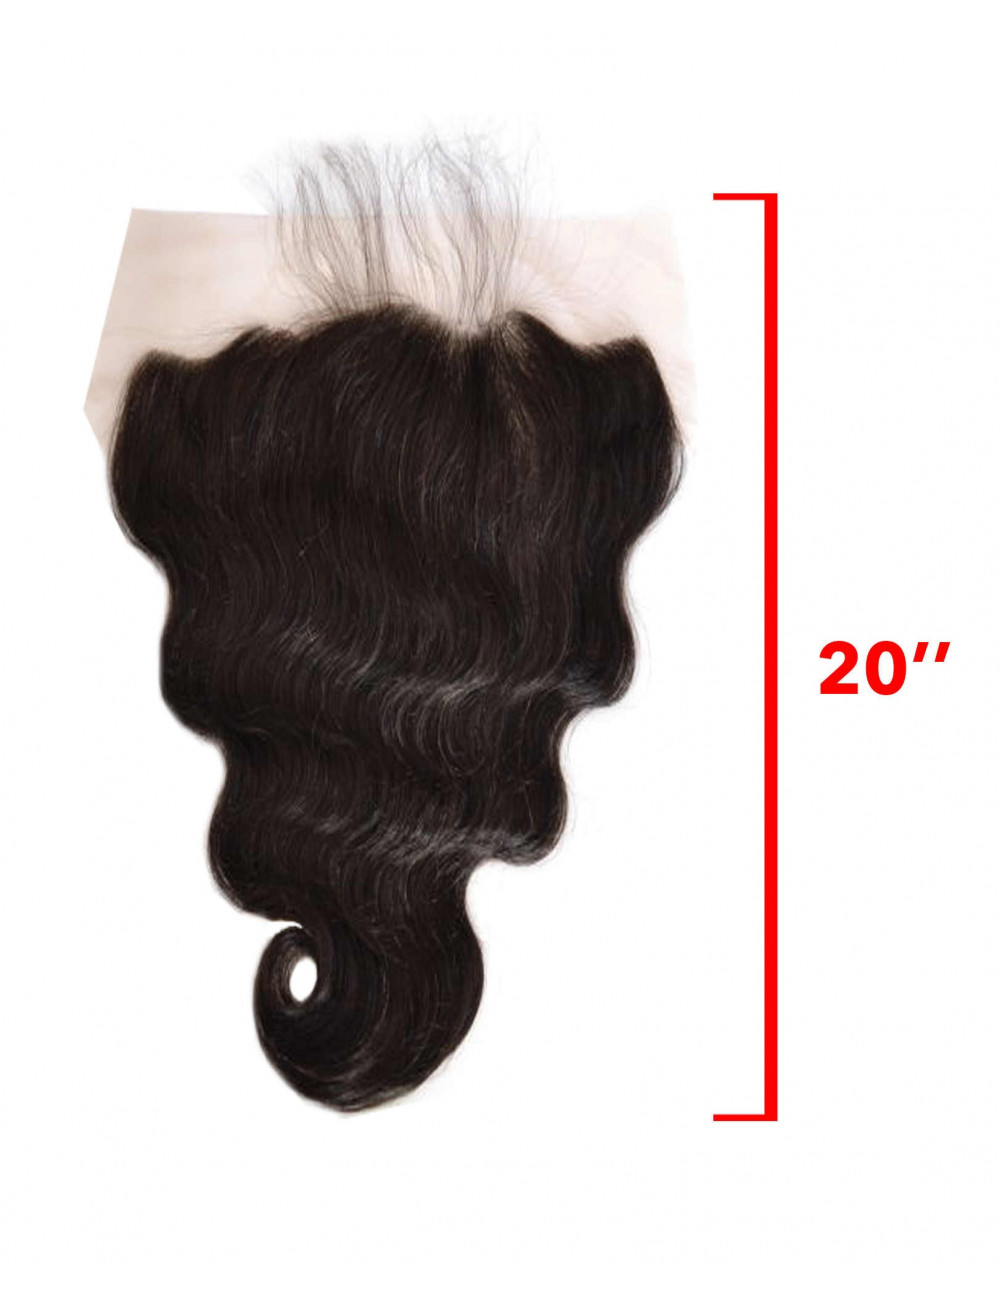 Mèches chinoises lace frontal ondulé 20""